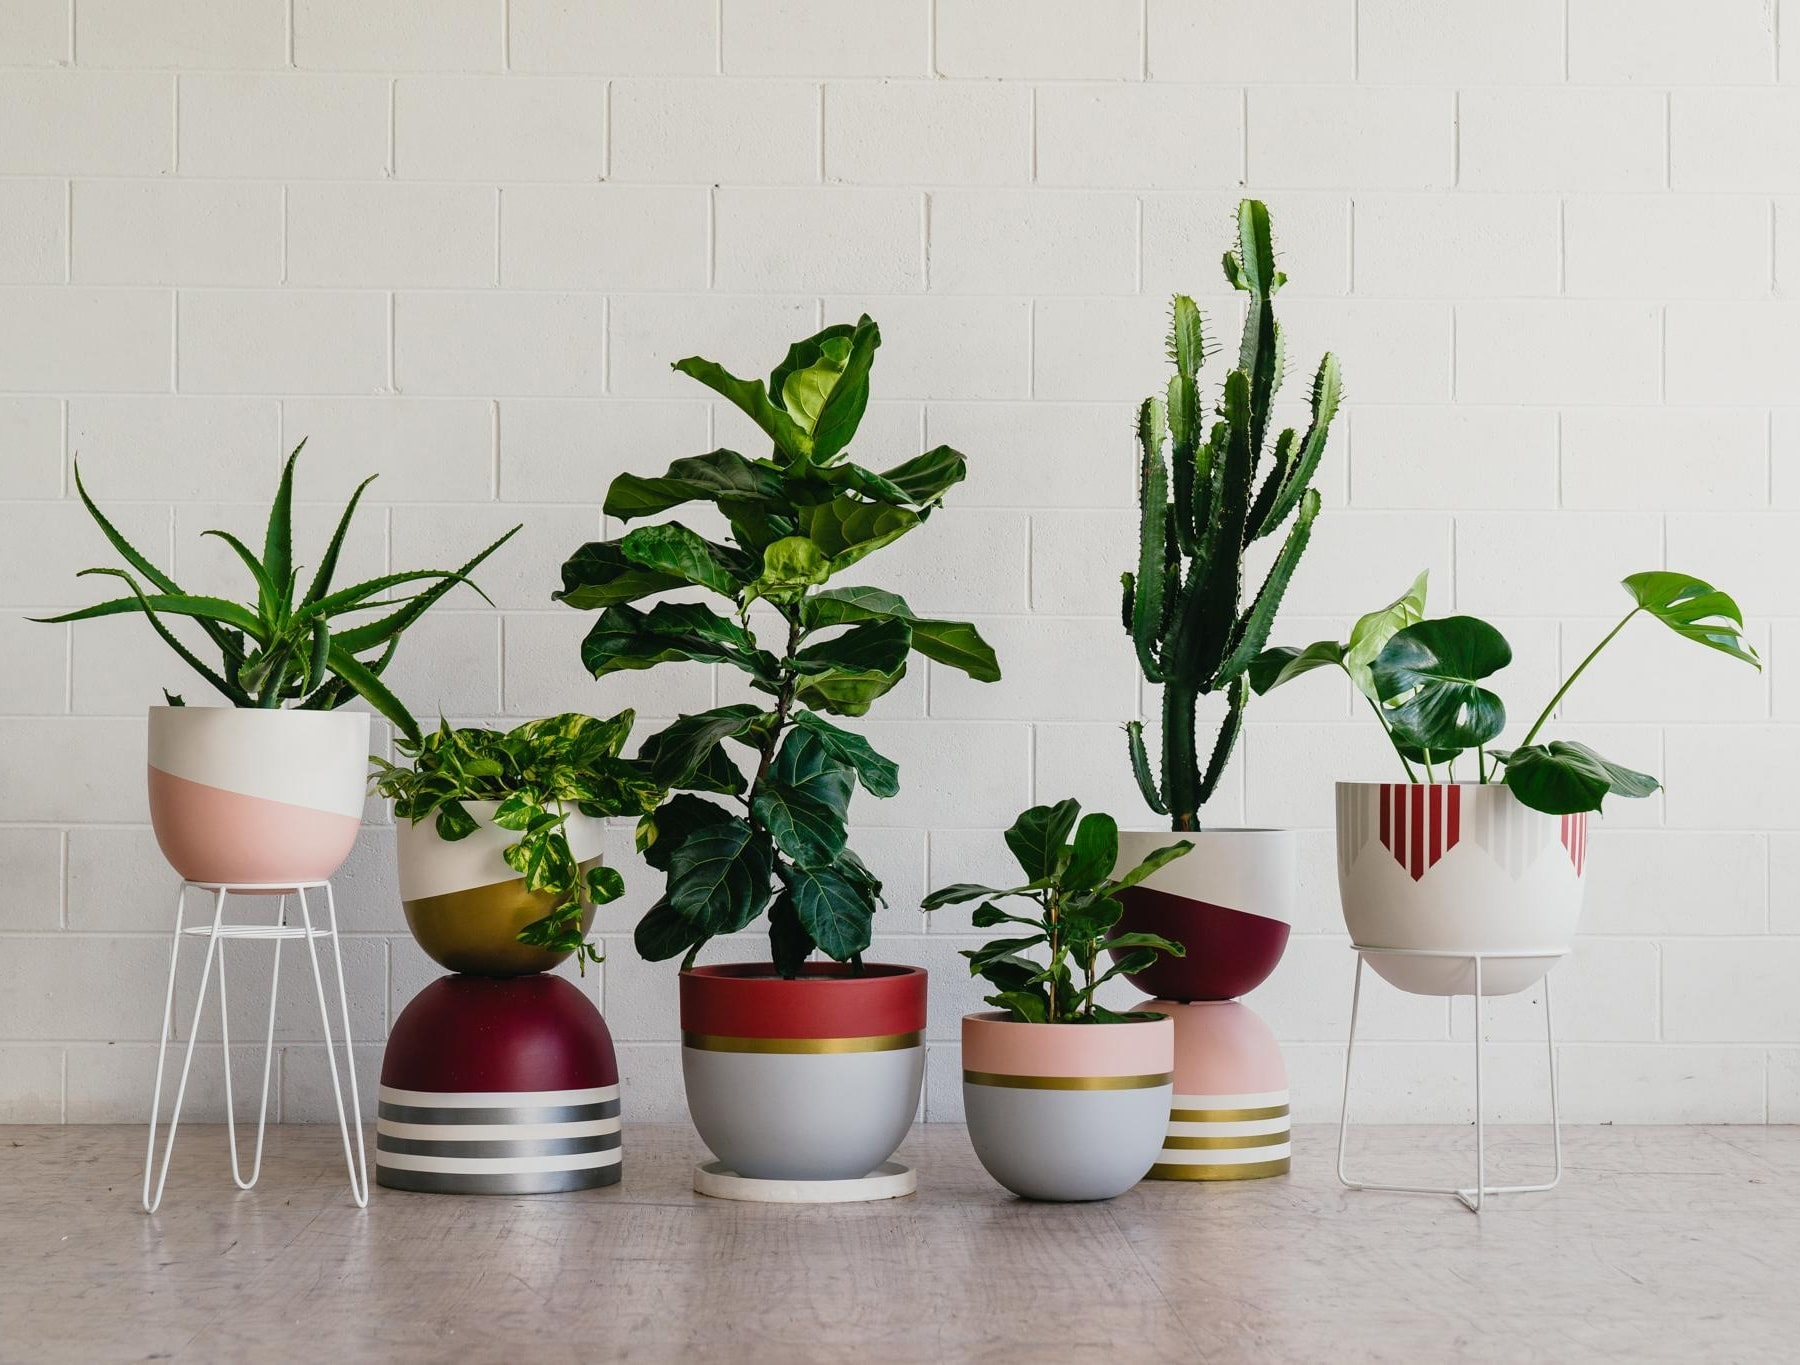 painted plant pots from toast and honey studio in red tones